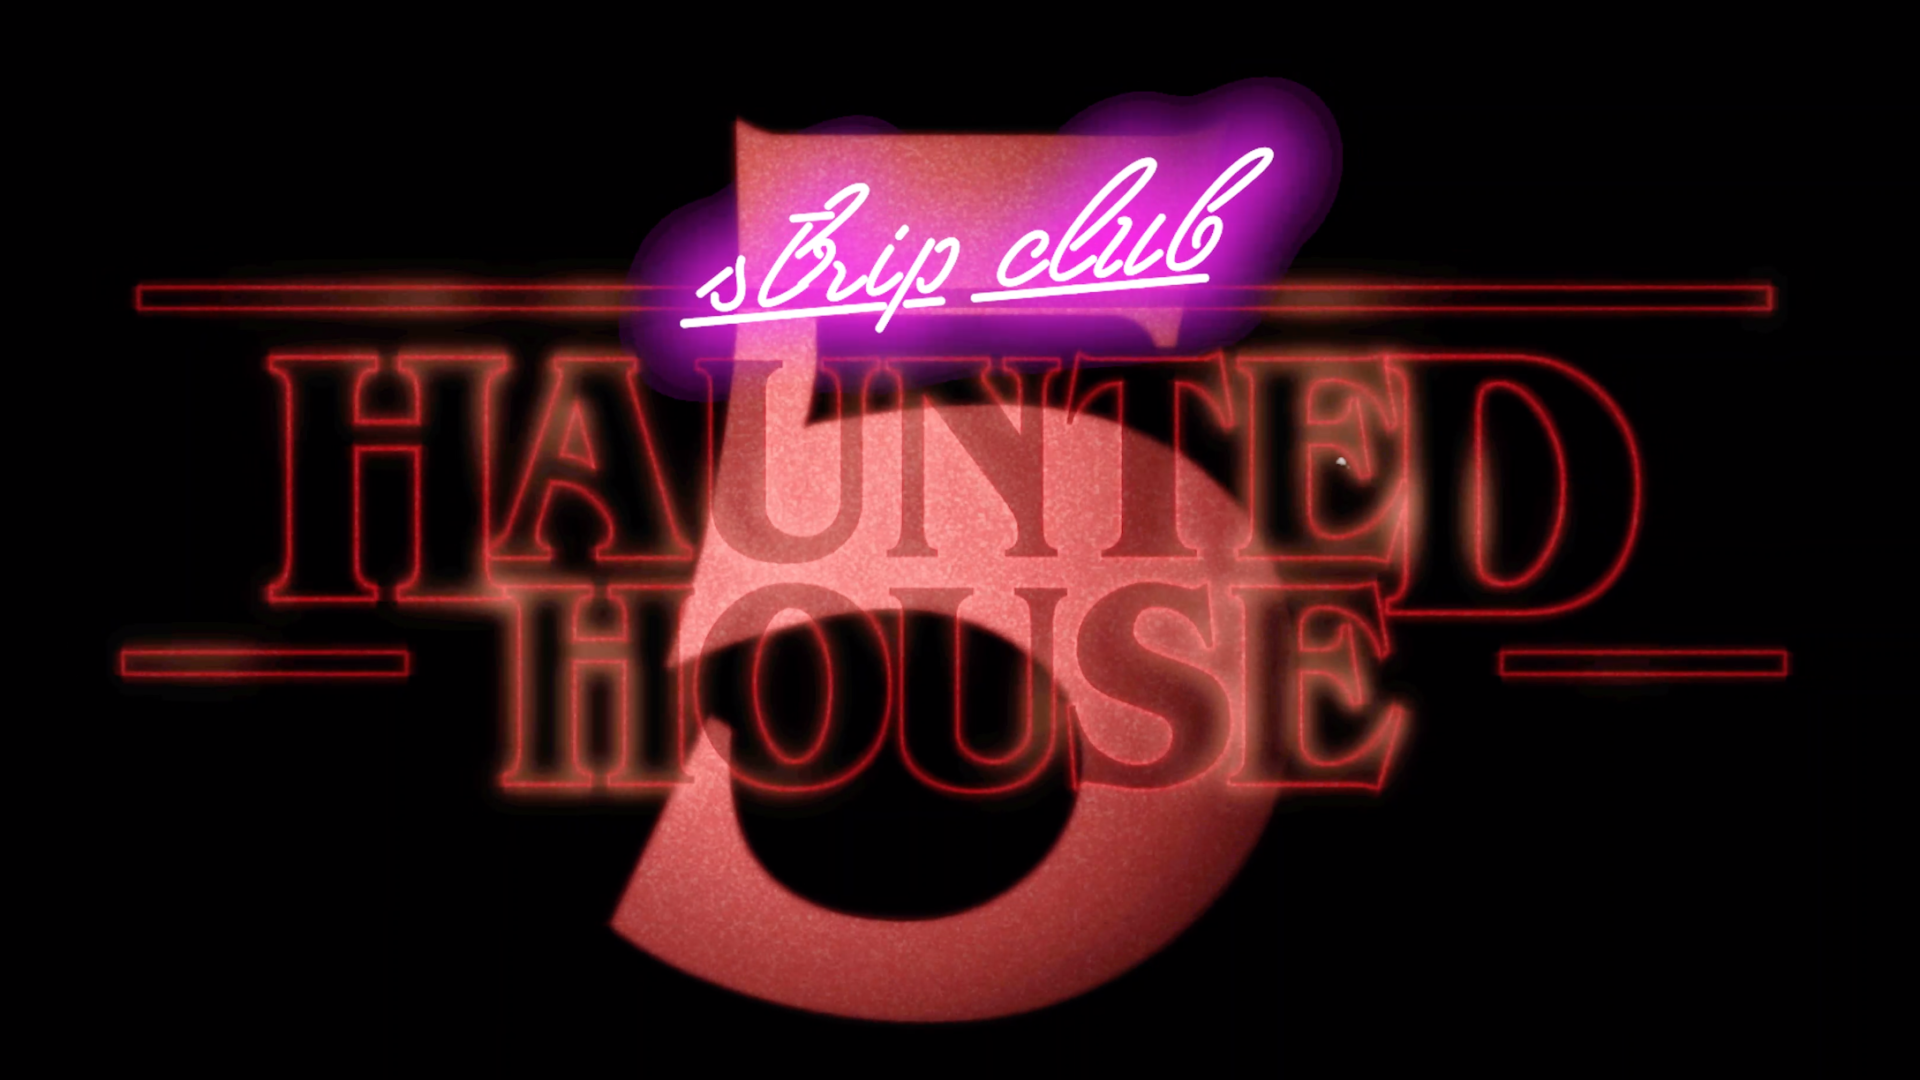 STRIP CLUB HAUNTED HOUSE 5